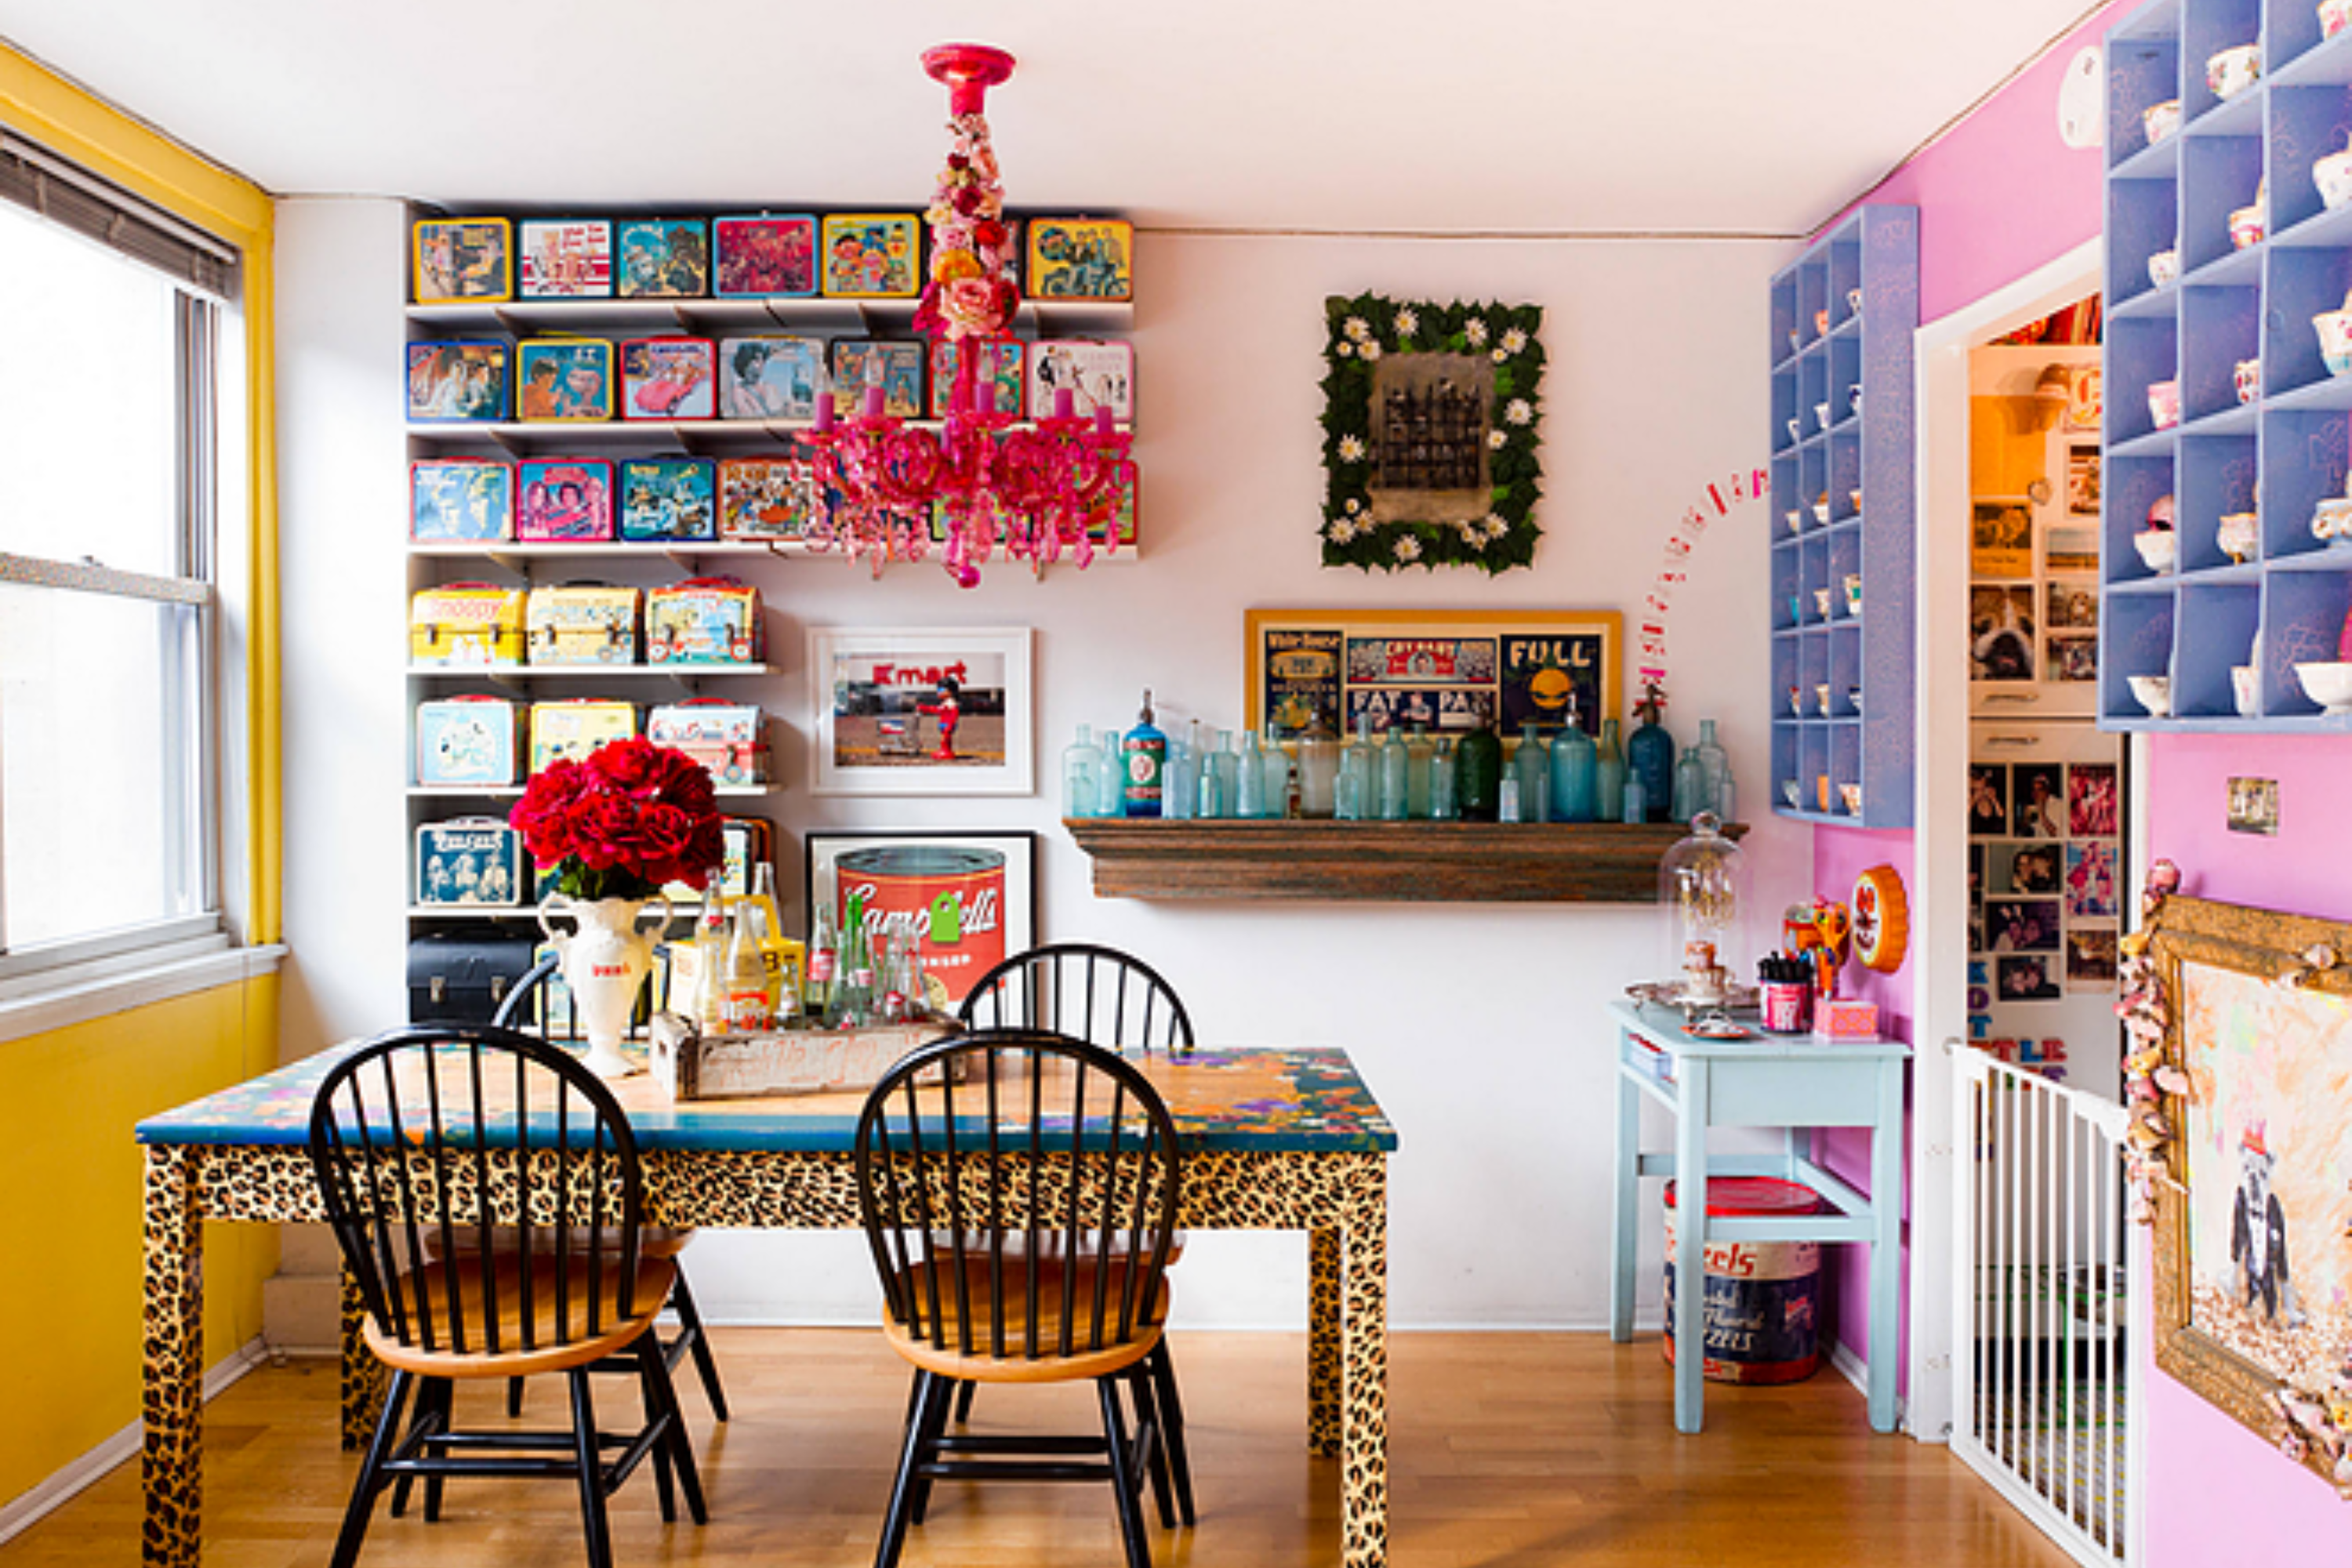 9 Decor Ideas for a Bold and Characterful Room